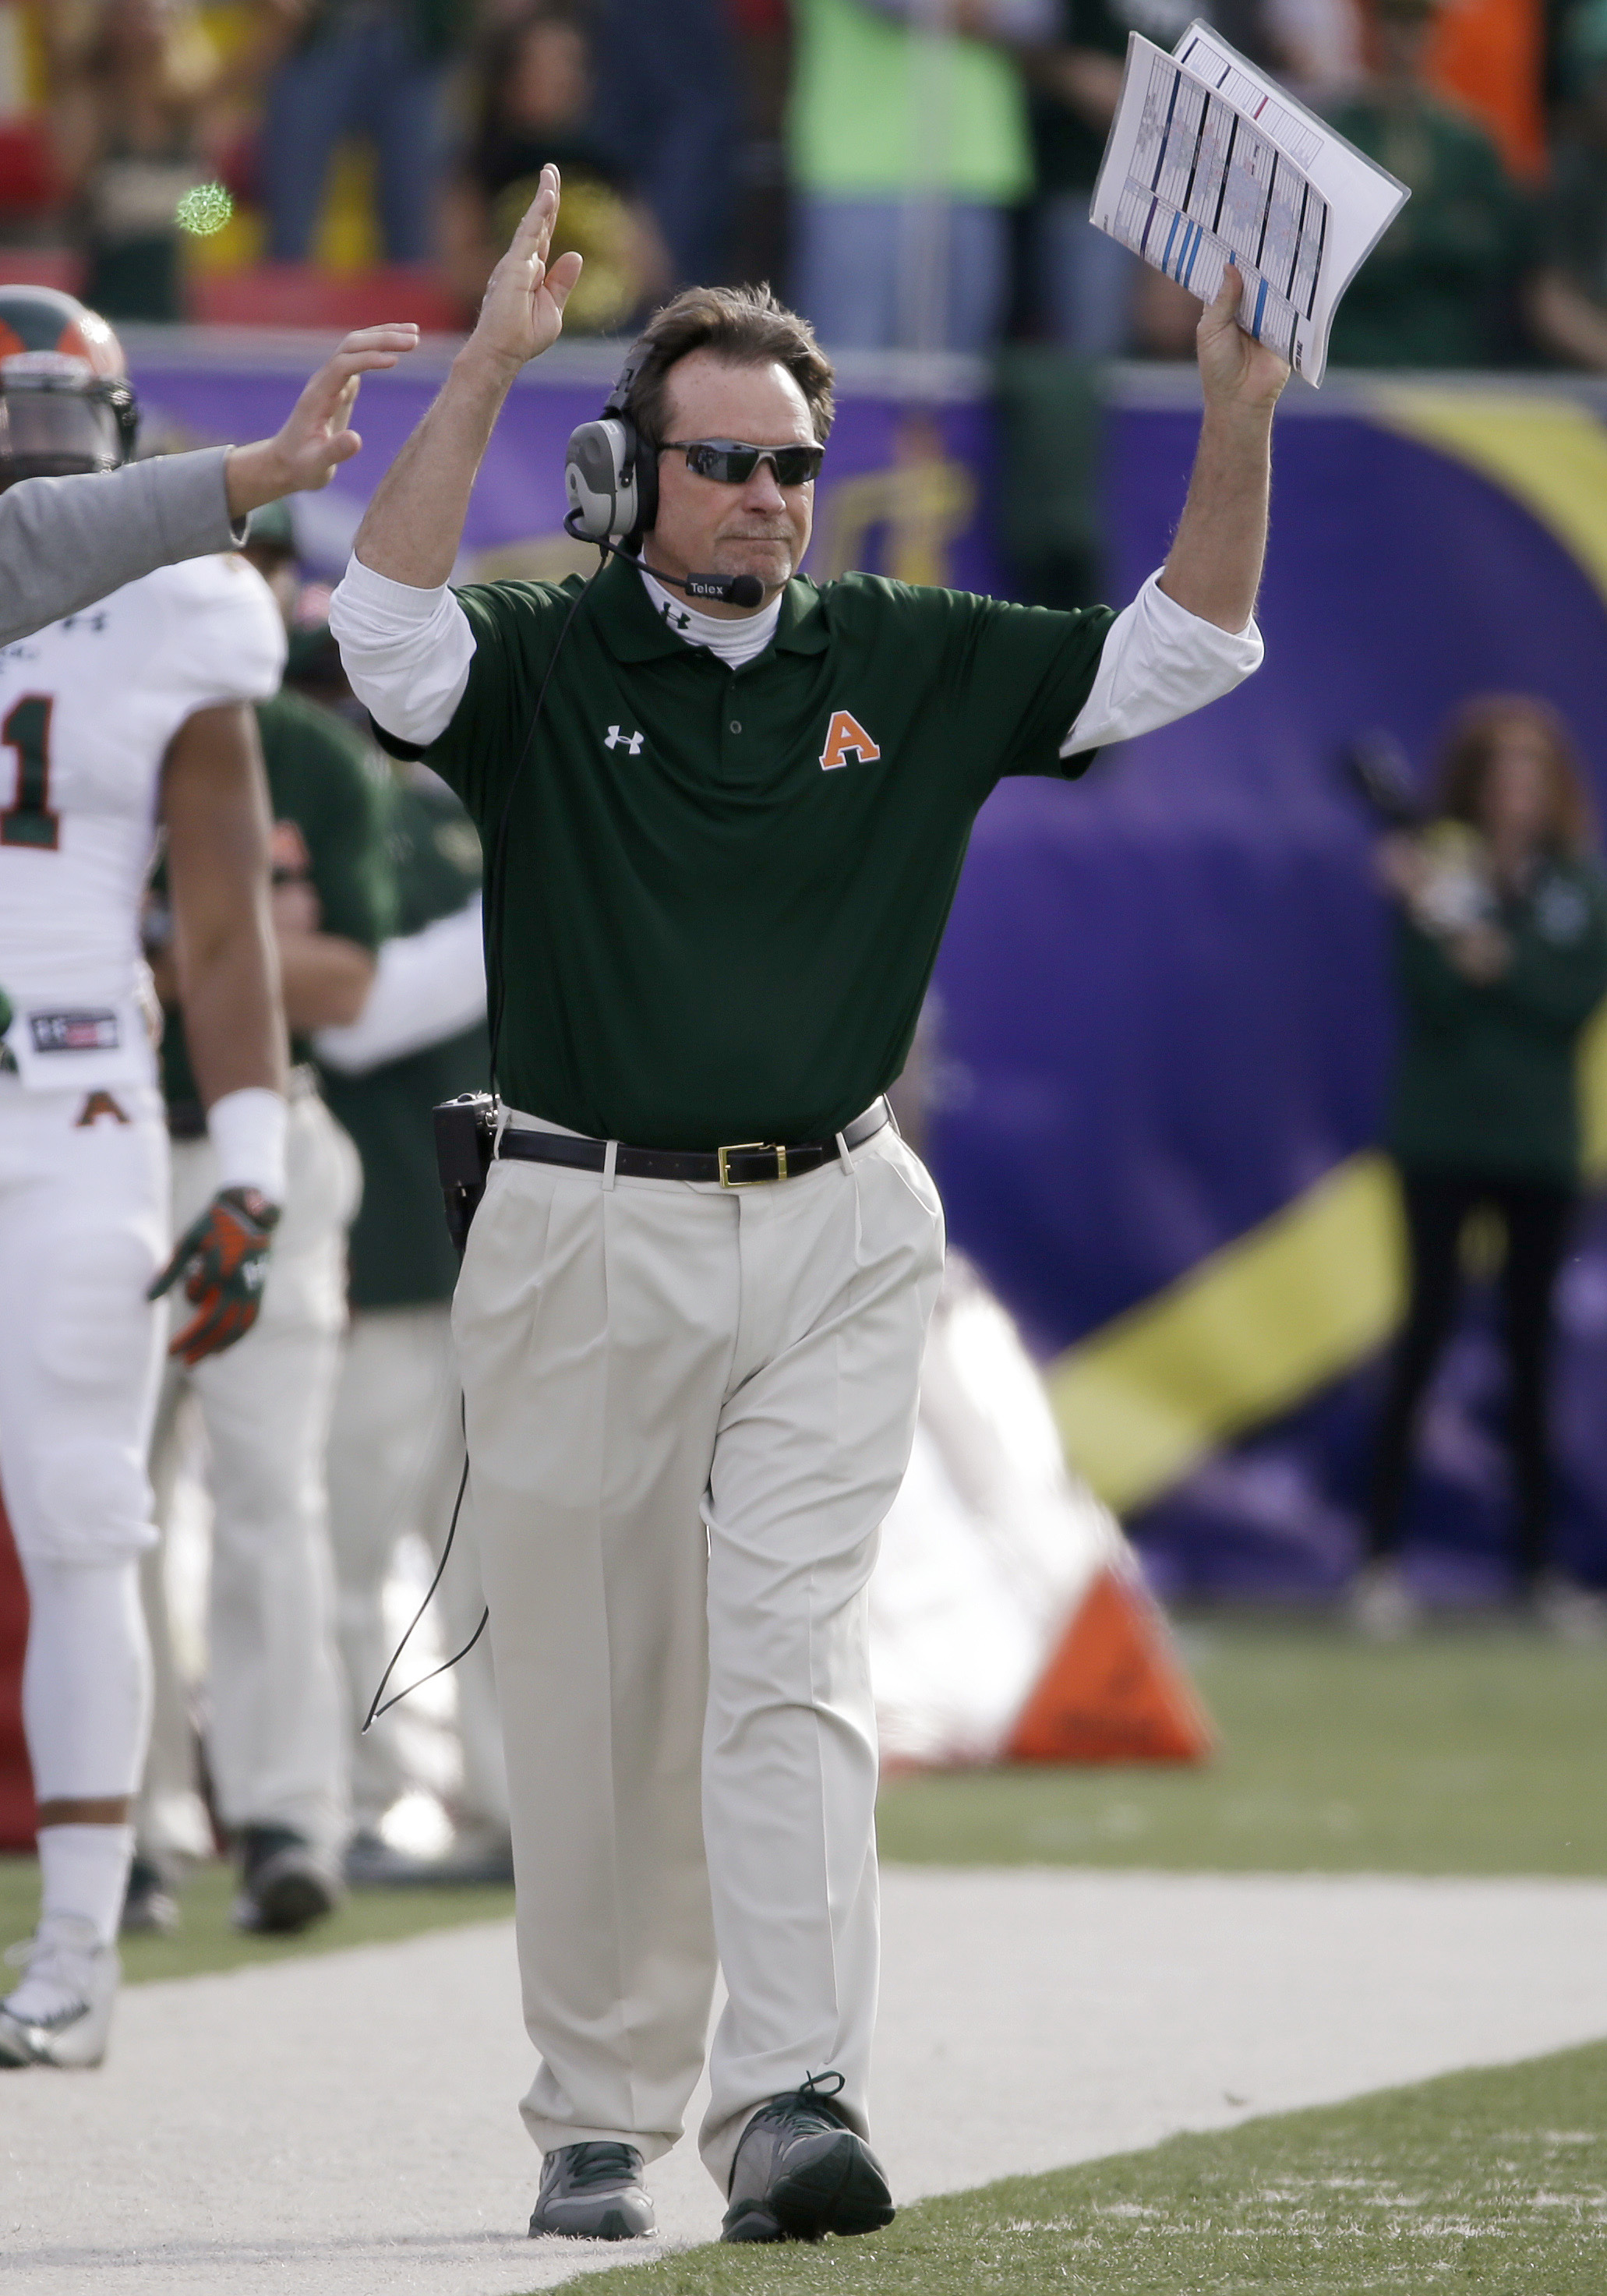 FILE - In this Dec. 20, 2014, file photo, Colorado State interim coach Dave Baldwin celebrates after his team scored a field goal against Utah during the Las Vegas Bowl NCAA college football game in Las Vegas. Now offensive coordinator at Oregon State, Ba